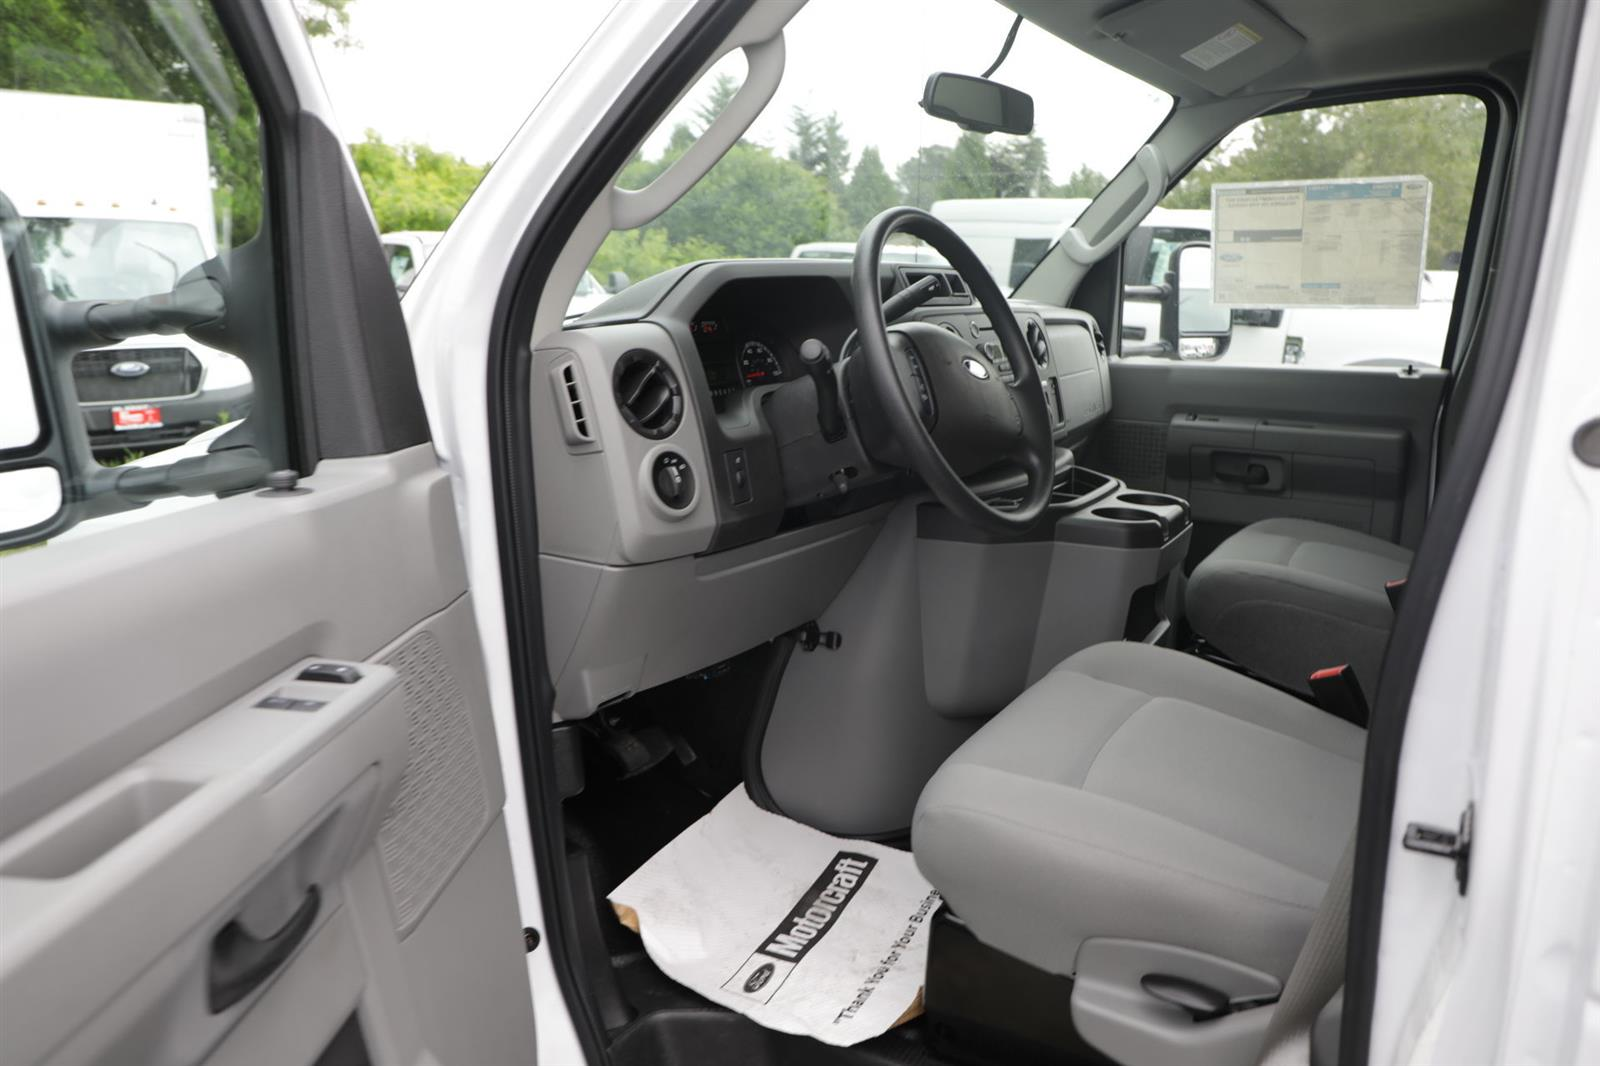 2019 Ford E-350 4x2, Supreme Iner-City Cutaway Van #E9430 - photo 12